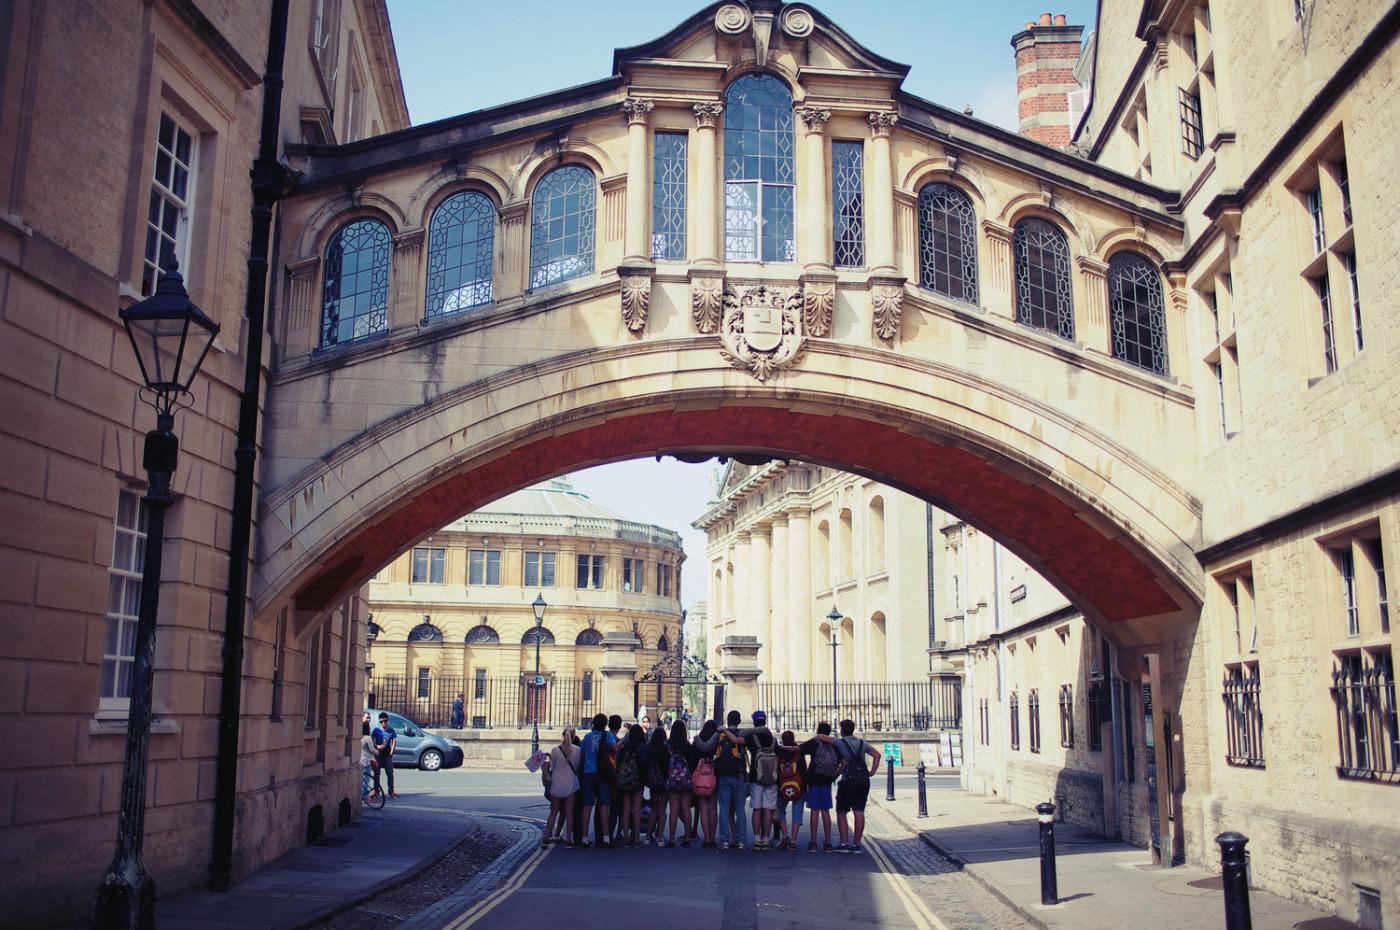 The Bridge of Sighs joins two parts of Hertford College